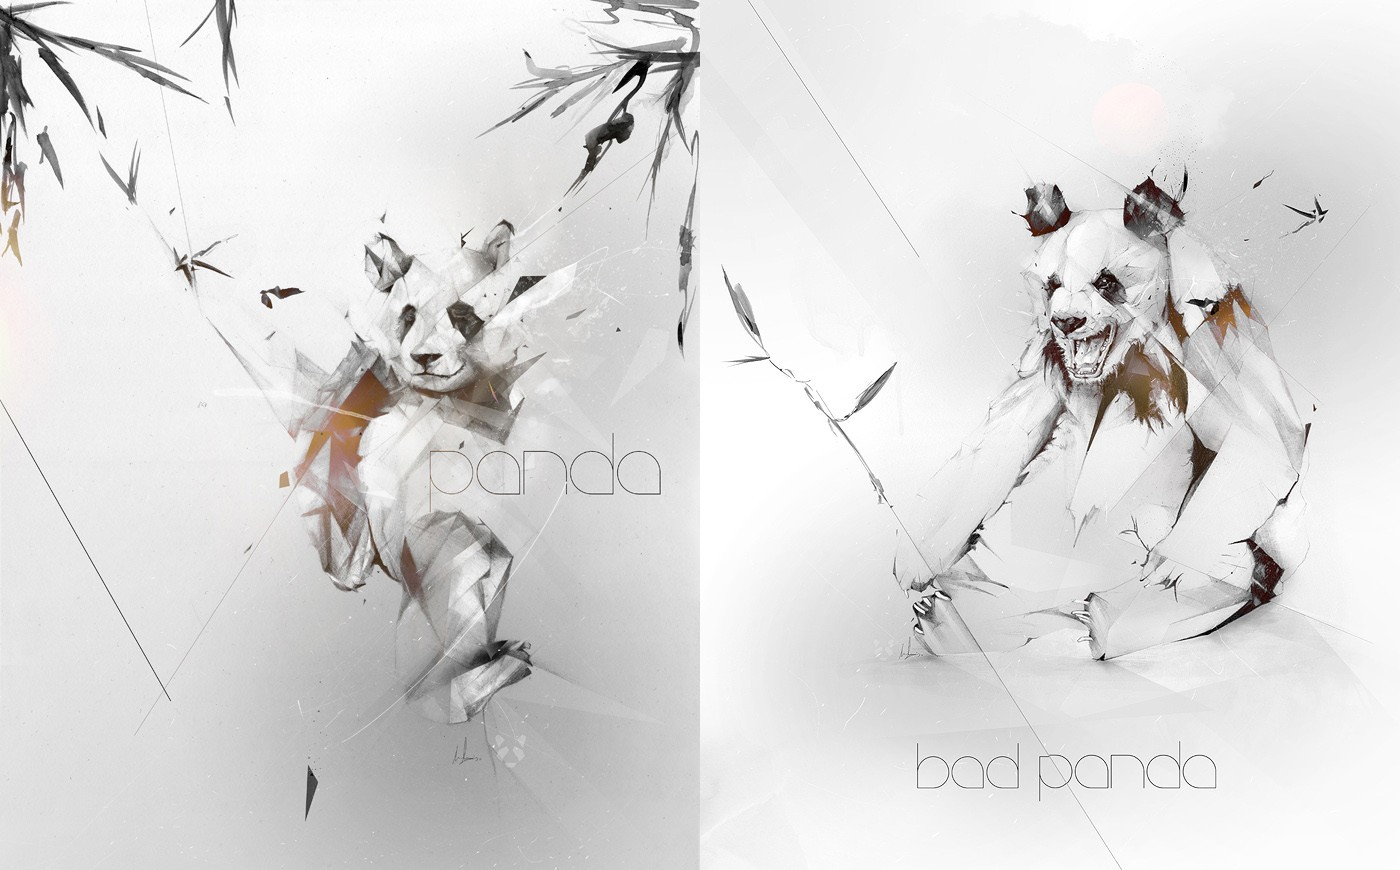 panda bears artwork Alexis HD Wallpaper